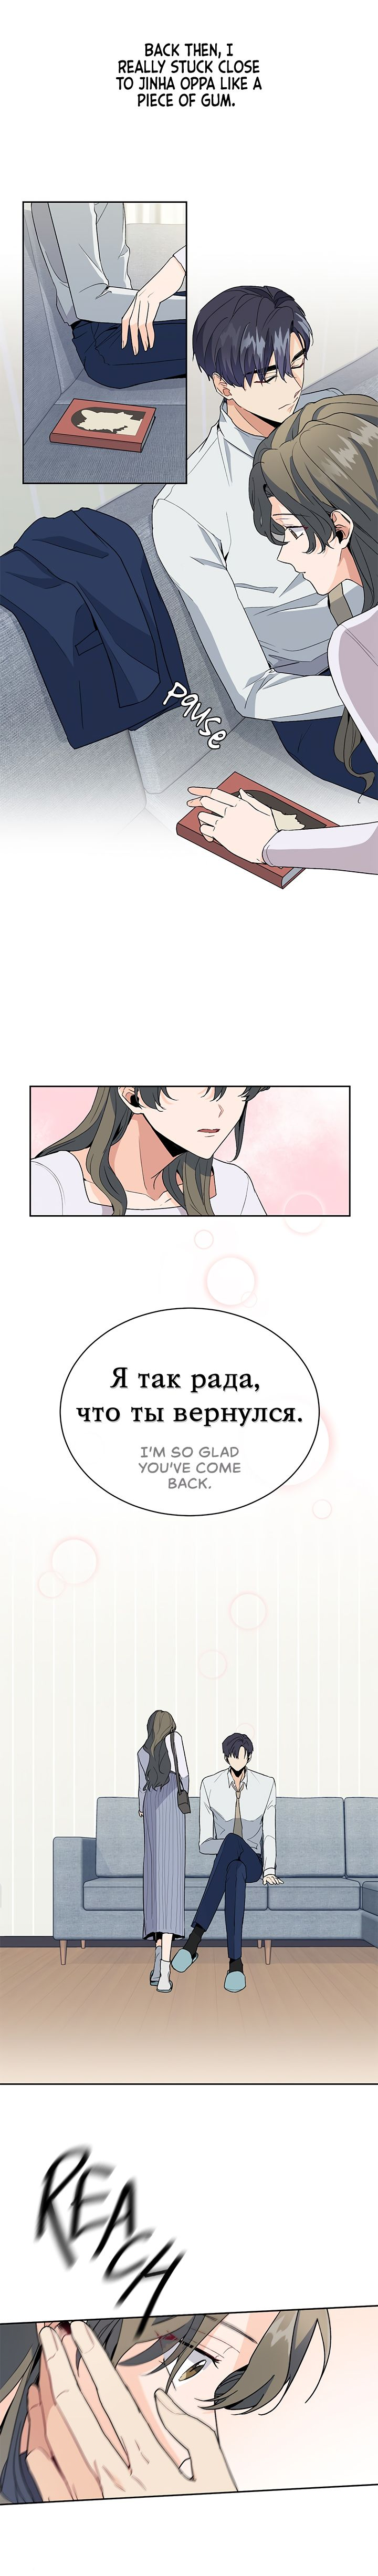 As The Lady Wishes - chapter 4 - #3